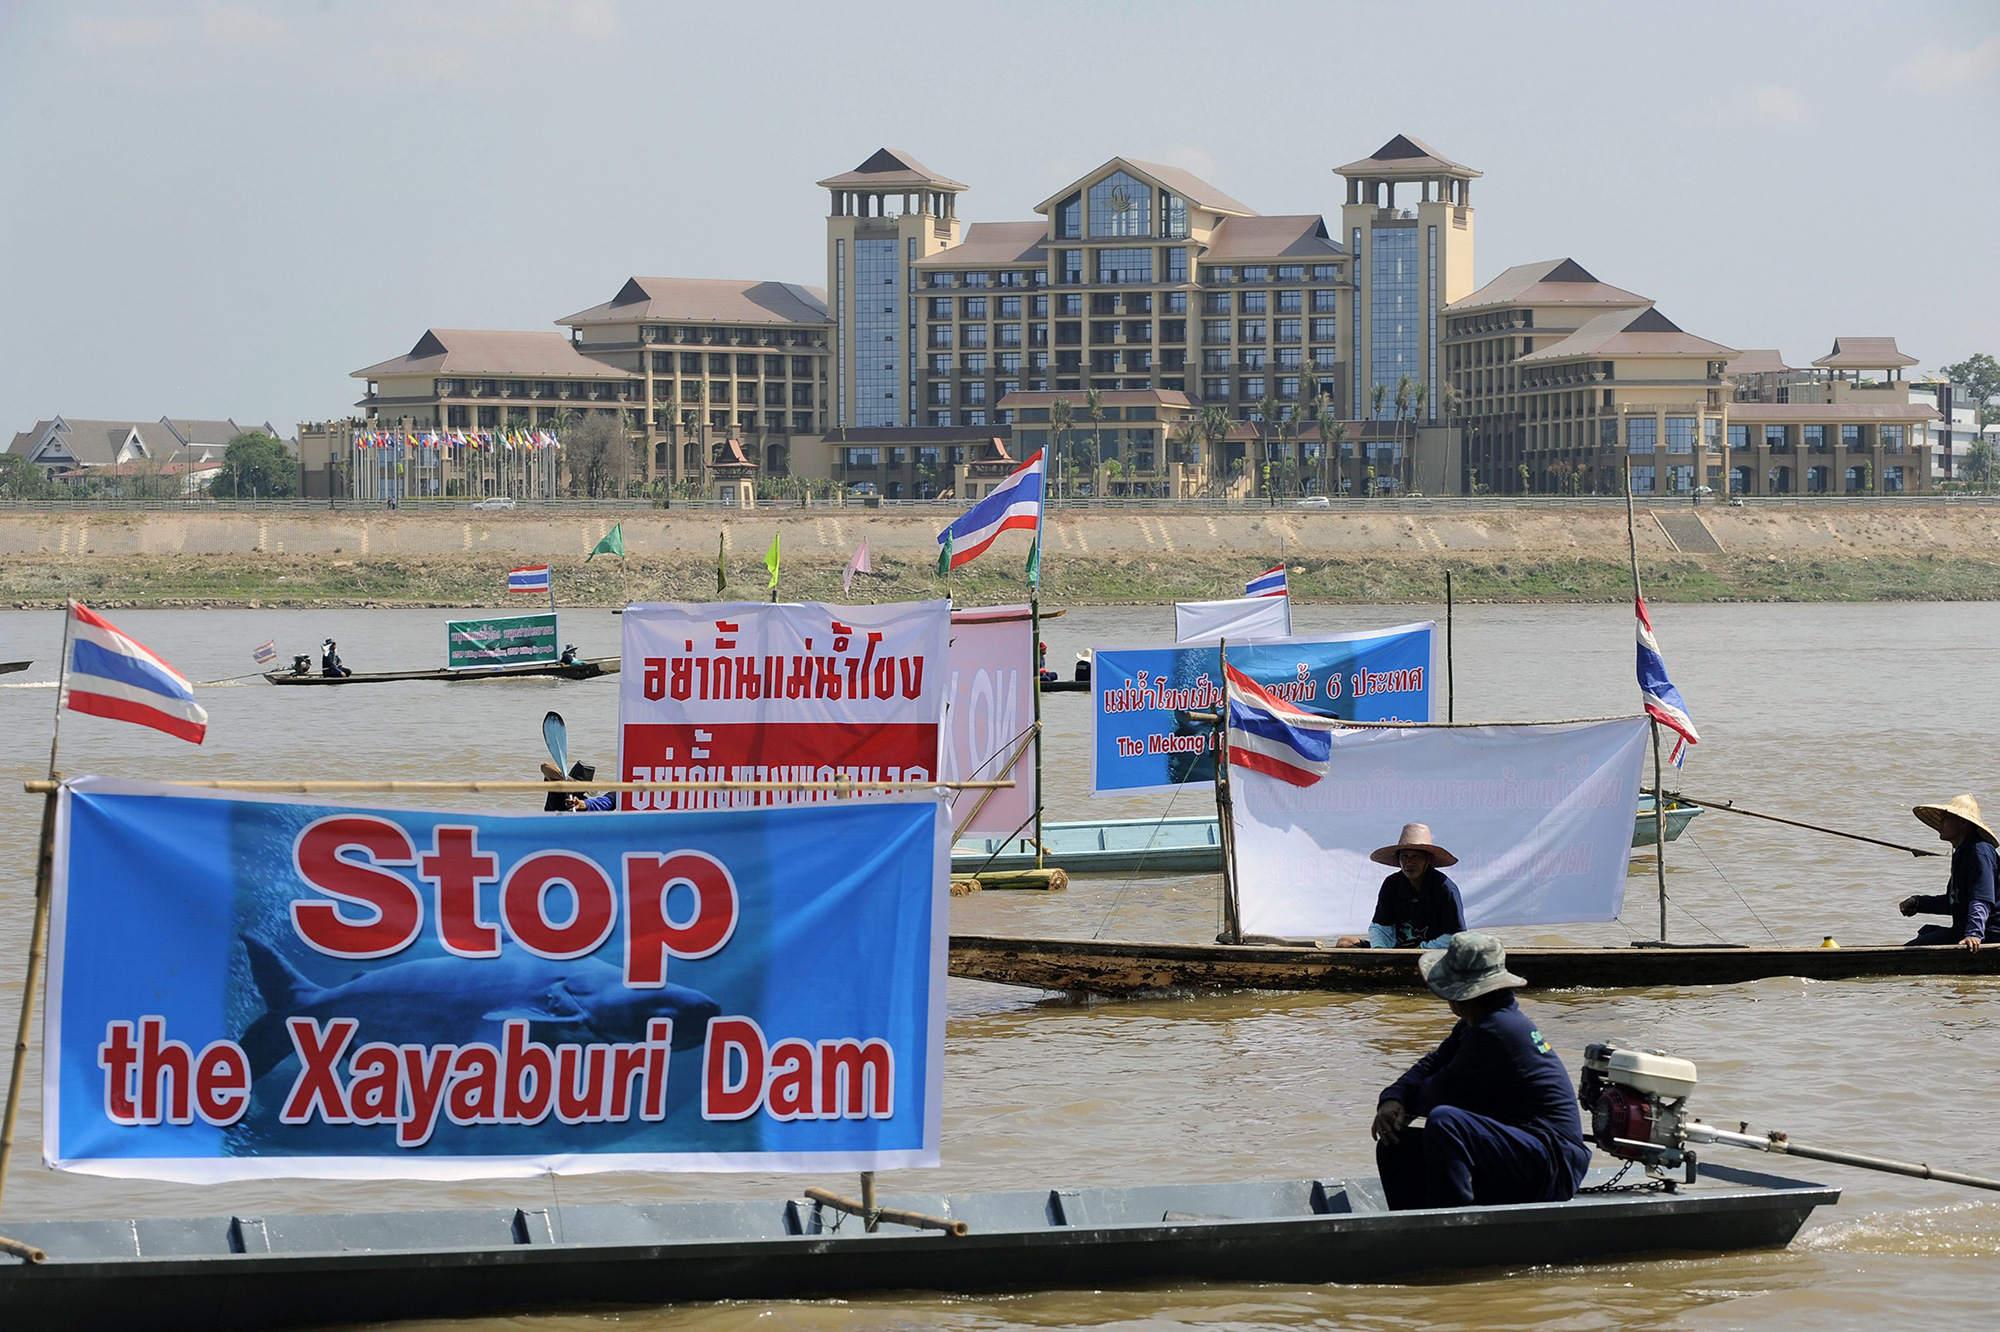 Thai activists and villagers who are affected by the controversial Xayaburi dam protest with banners on the Mekong river in Nong Khai province, Thailand, in November 2012.